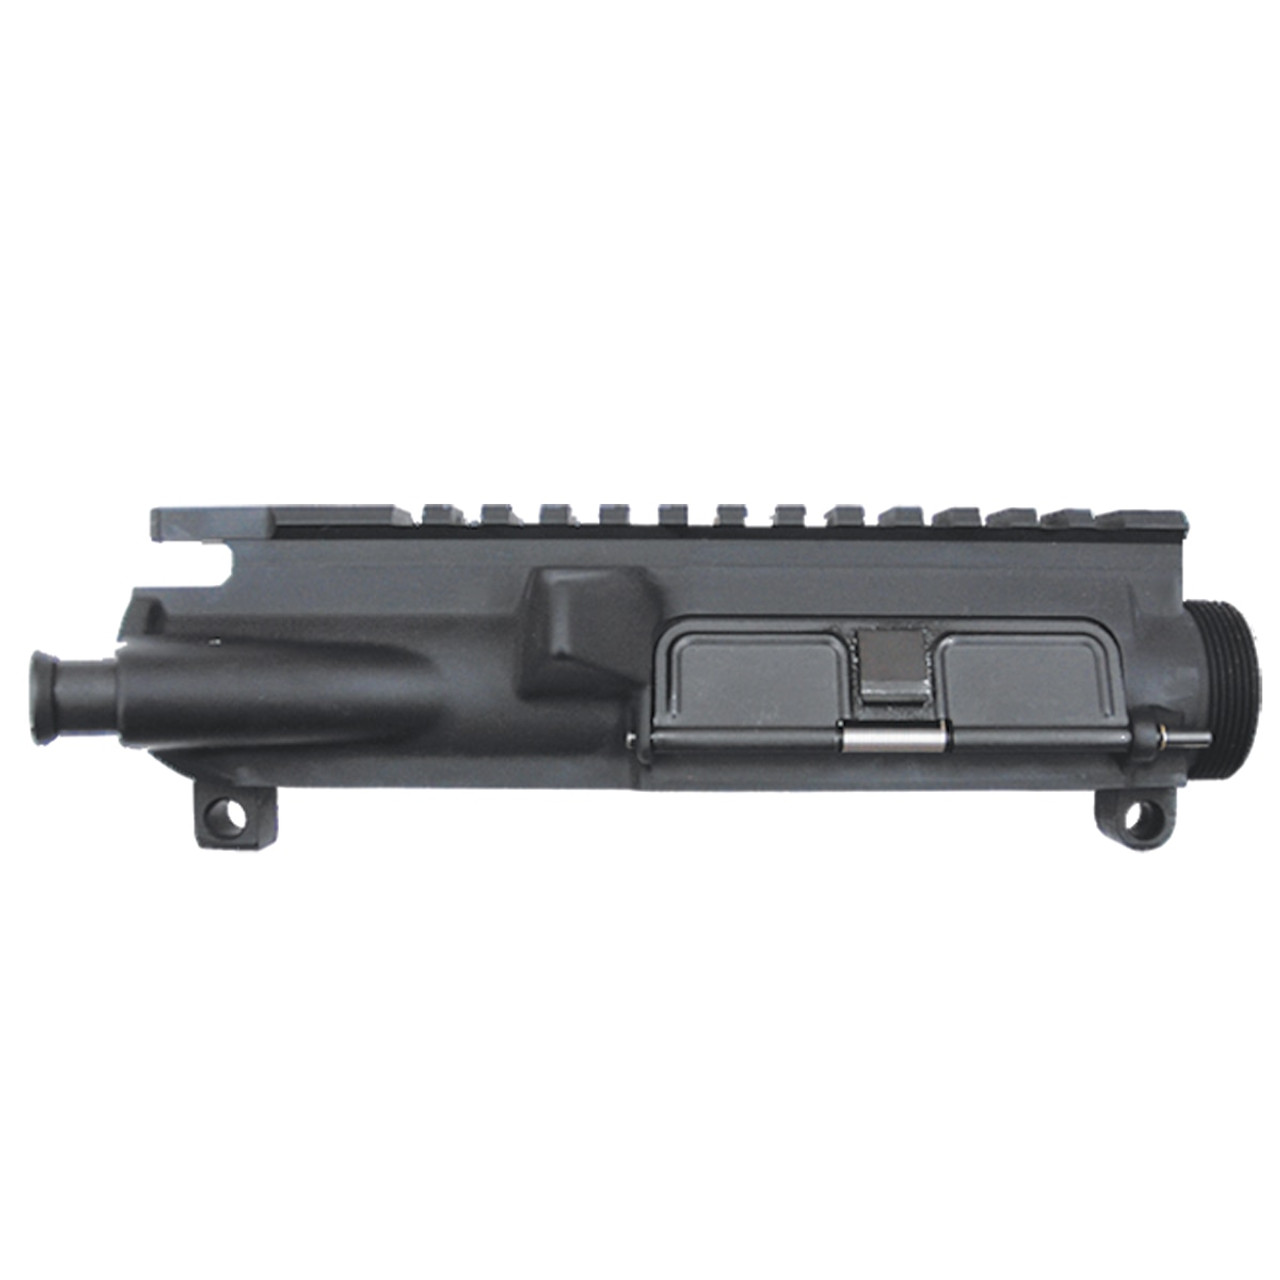 Stag Arms A3 Flattop AR15 Upper Receiver Assembly